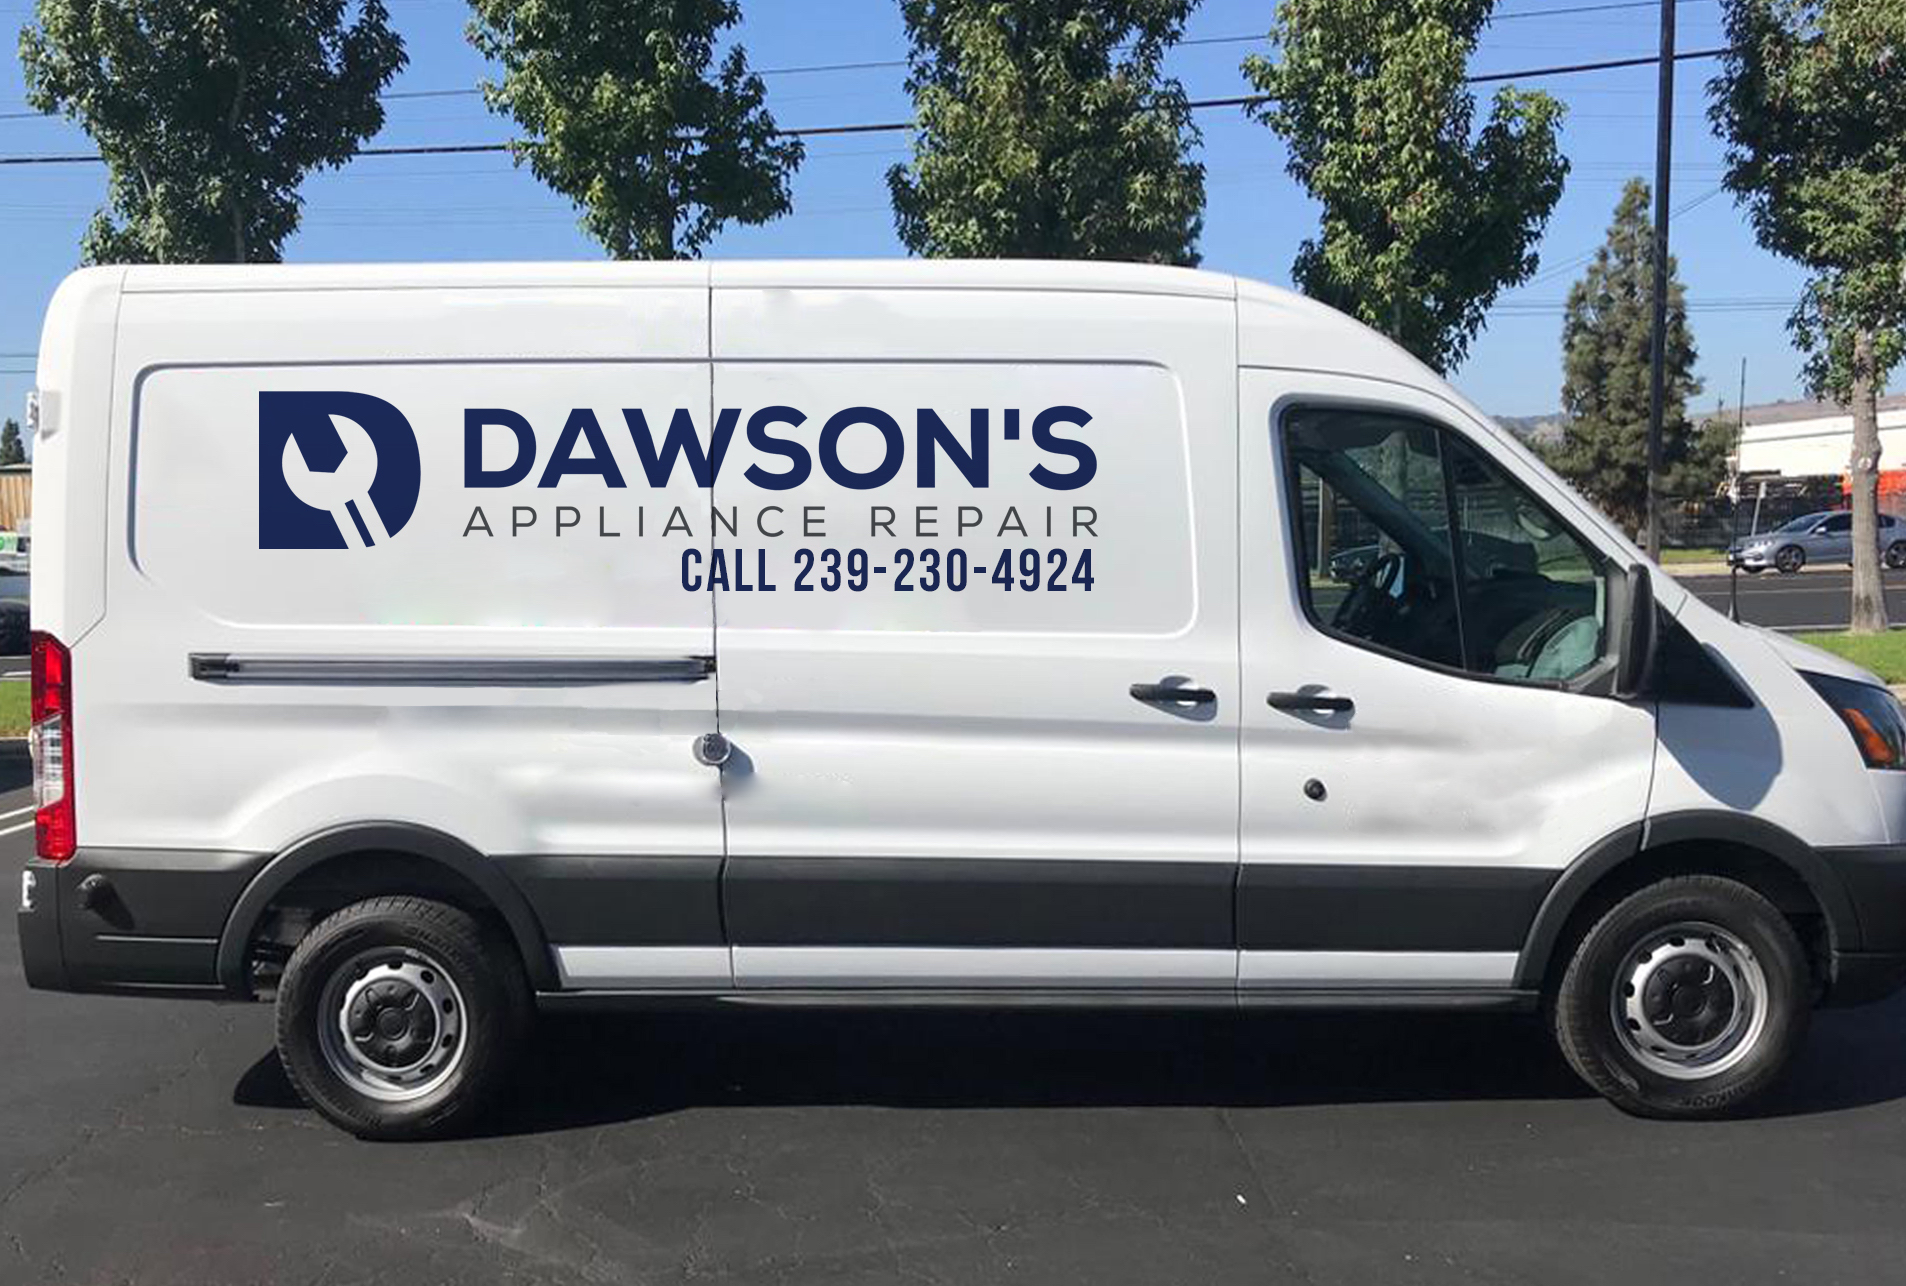 dawson appliance repair in san leandro